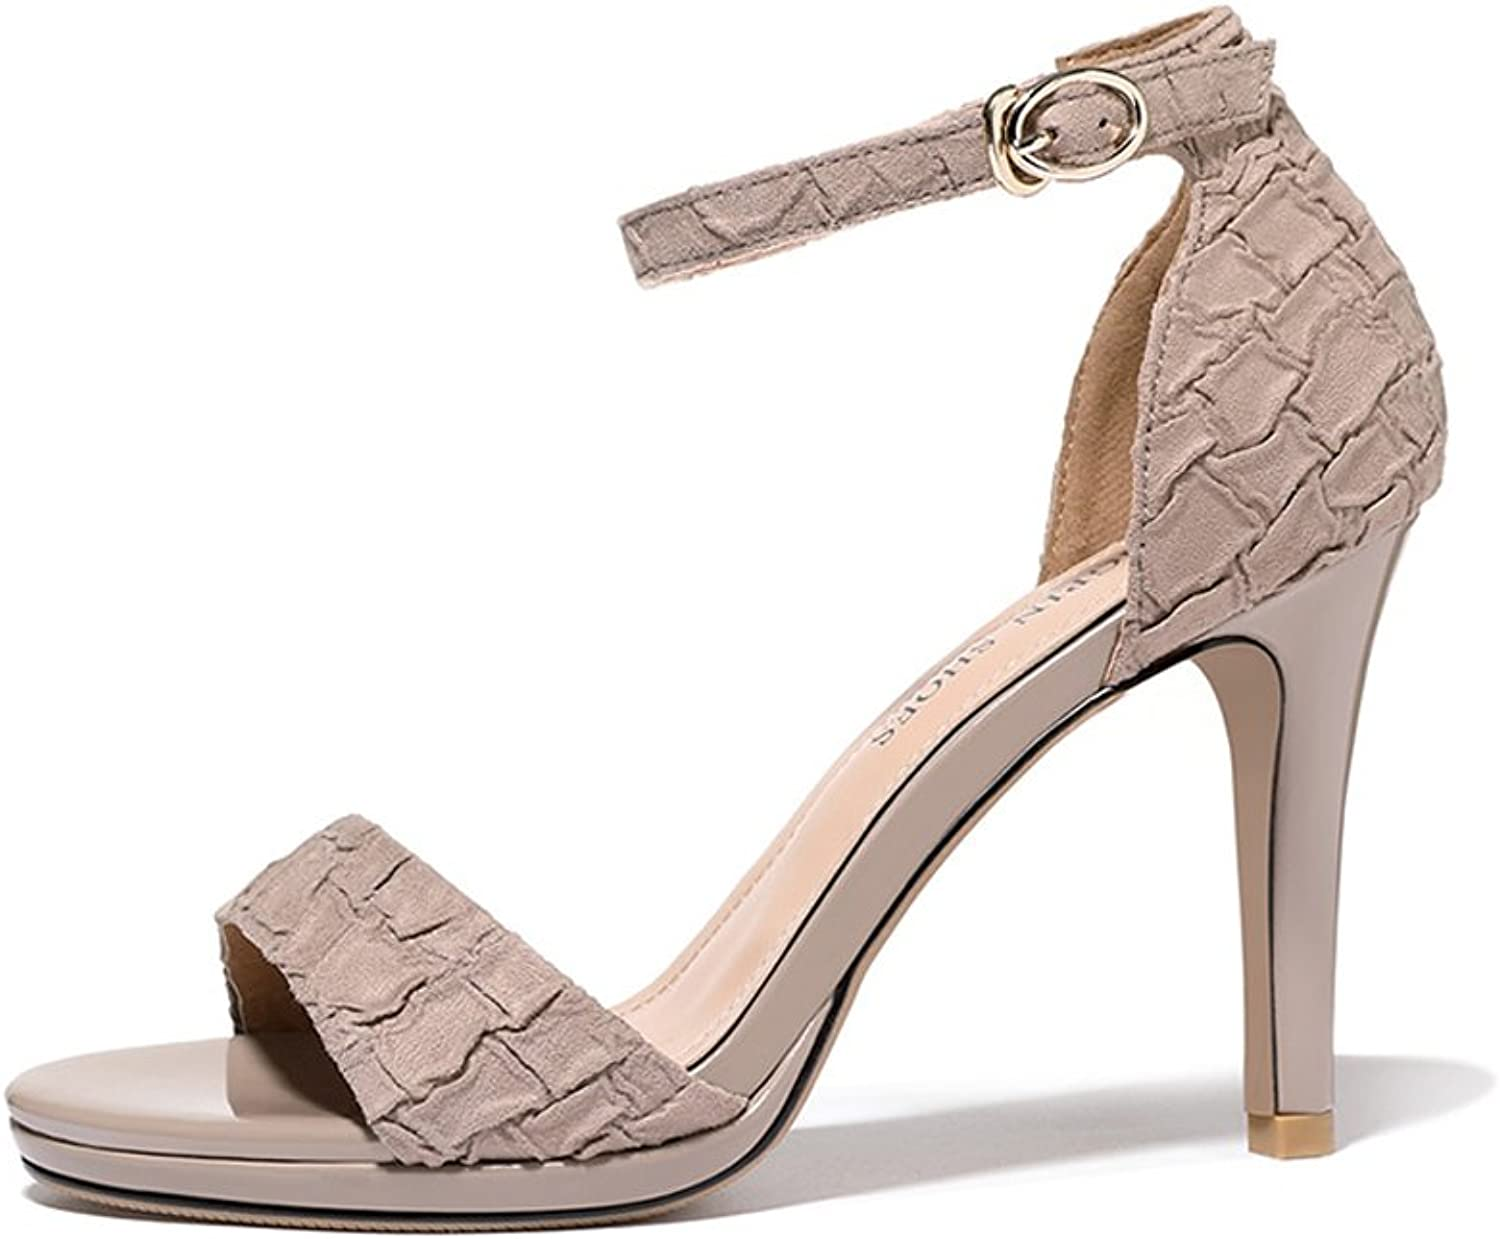 Summer Buckle Female Summer sandals Women with coarse with Open-Toed shoes New Summer high Heels (high 9cm) (color   Beige, Size   39)